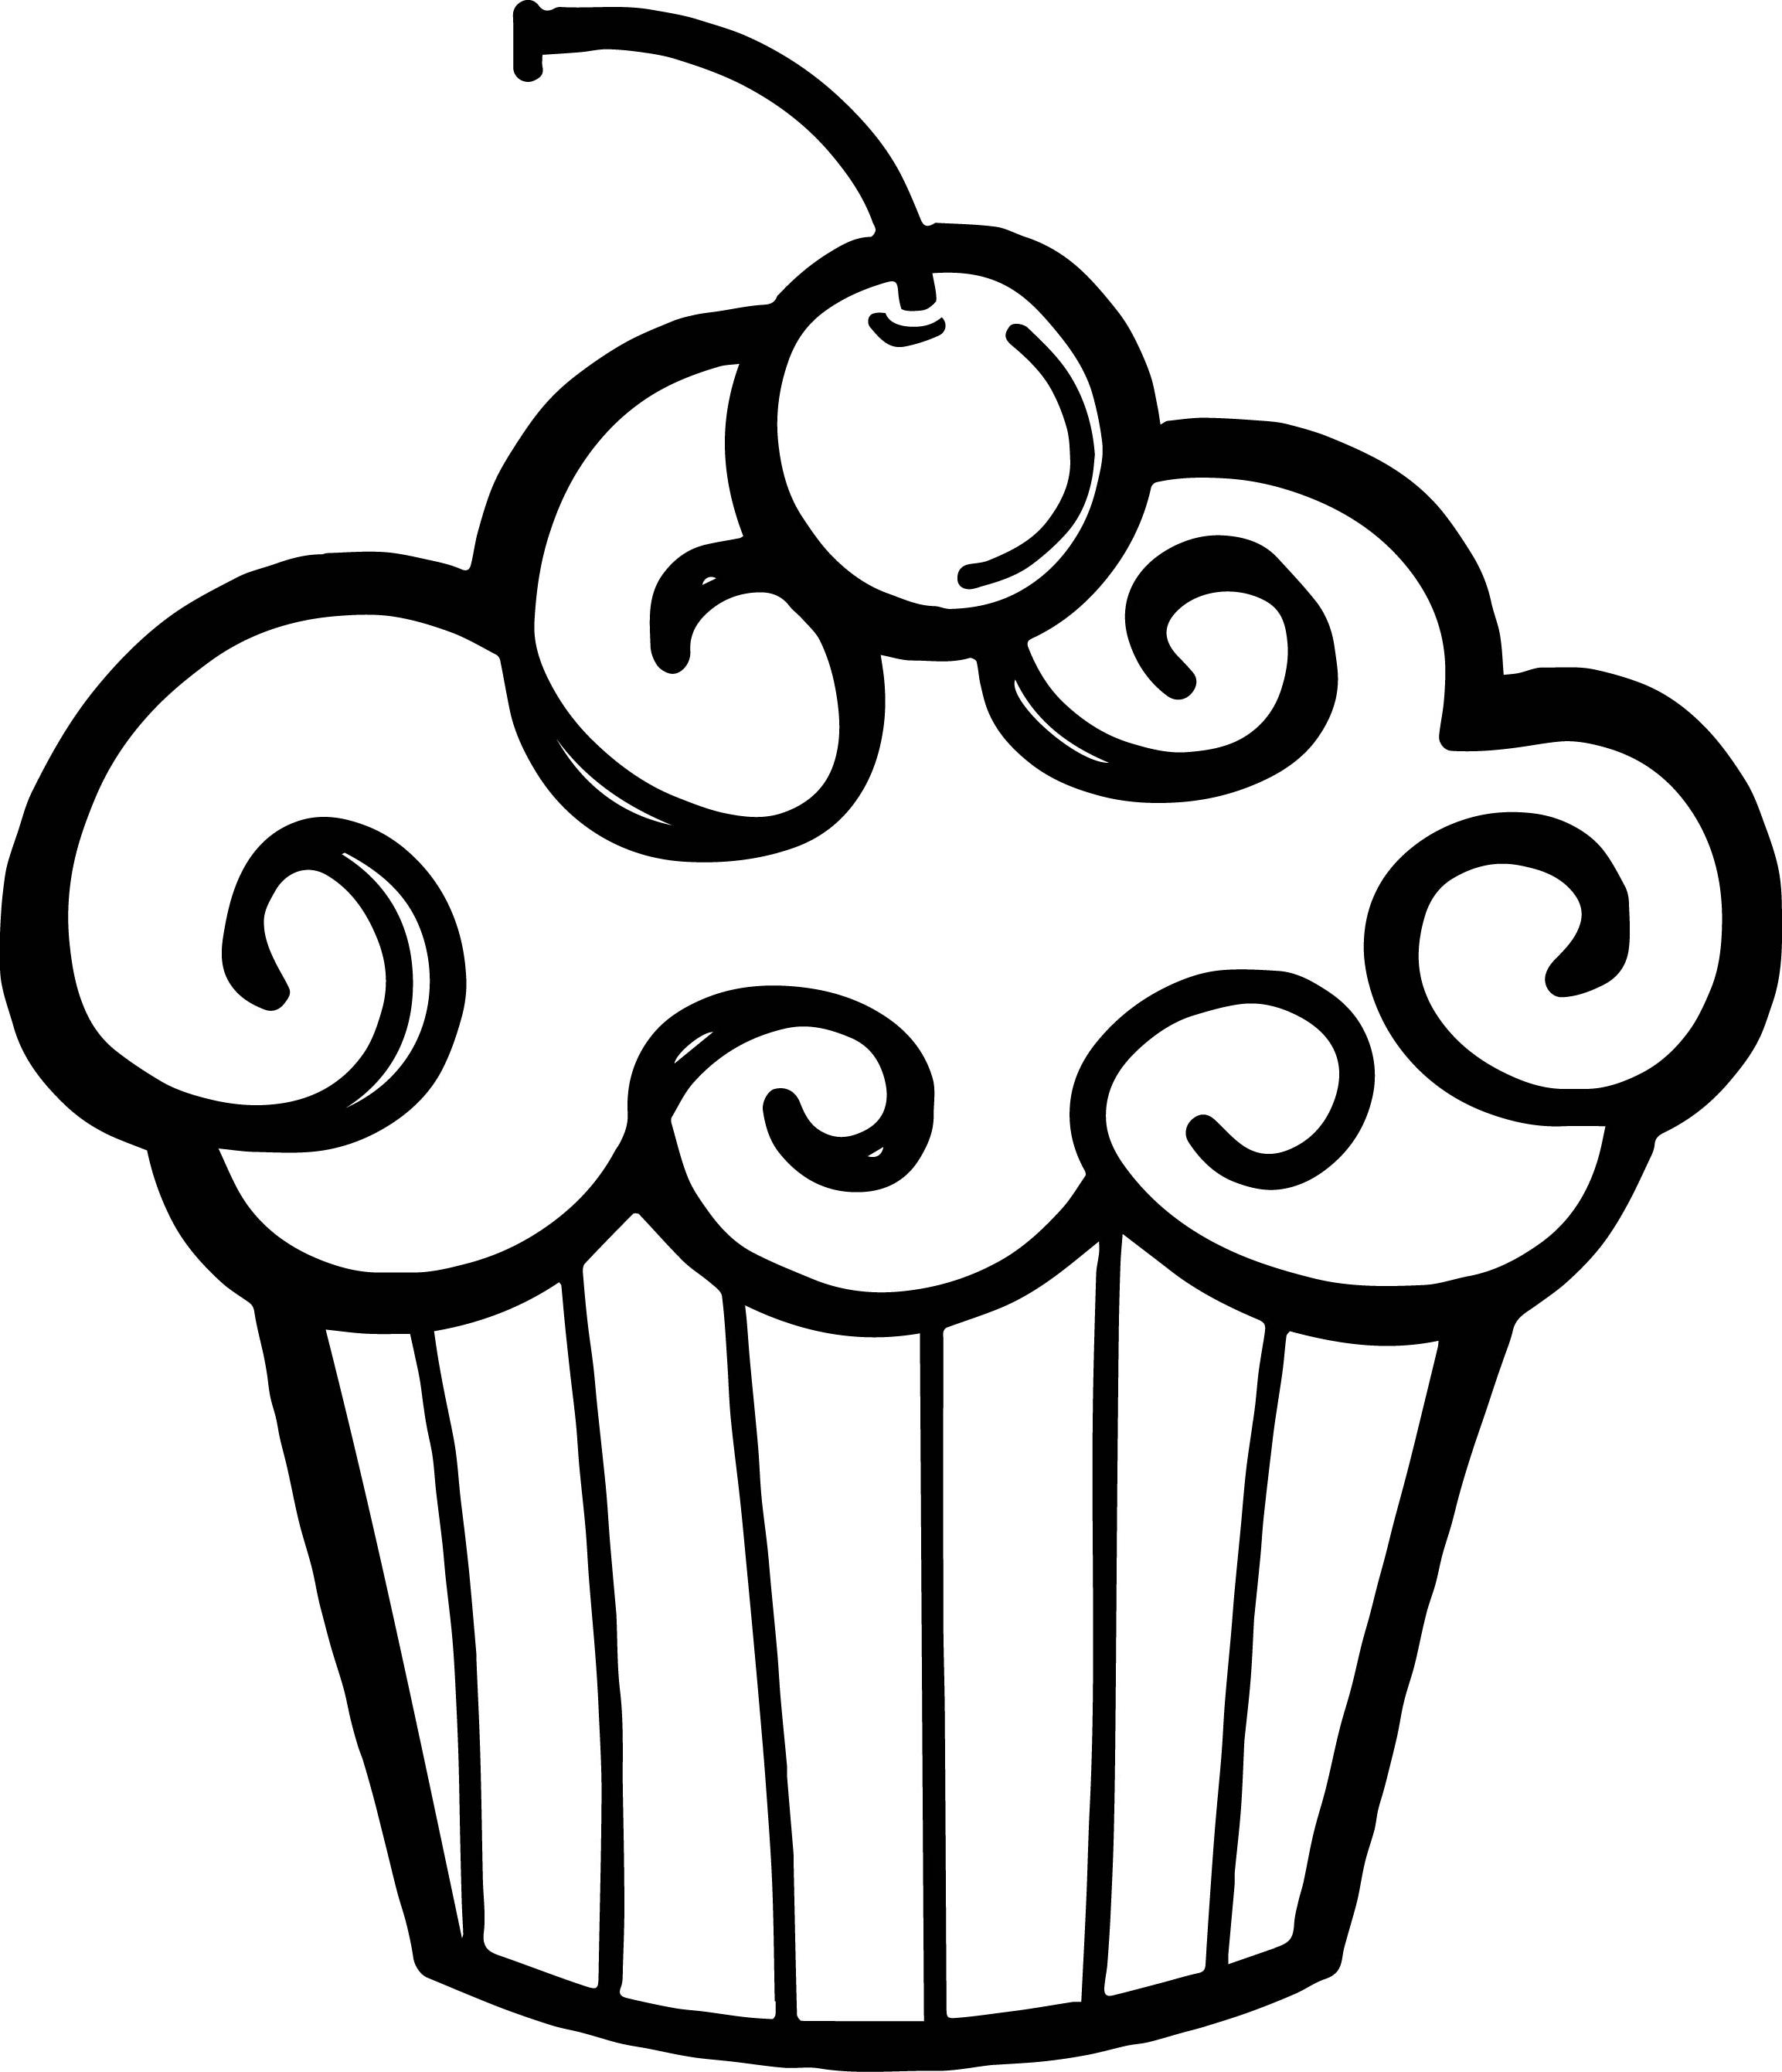 Heart desserts clipart black and white clipart black and white library Cupcake Clipart Black And White | Free download best Cupcake Clipart ... clipart black and white library